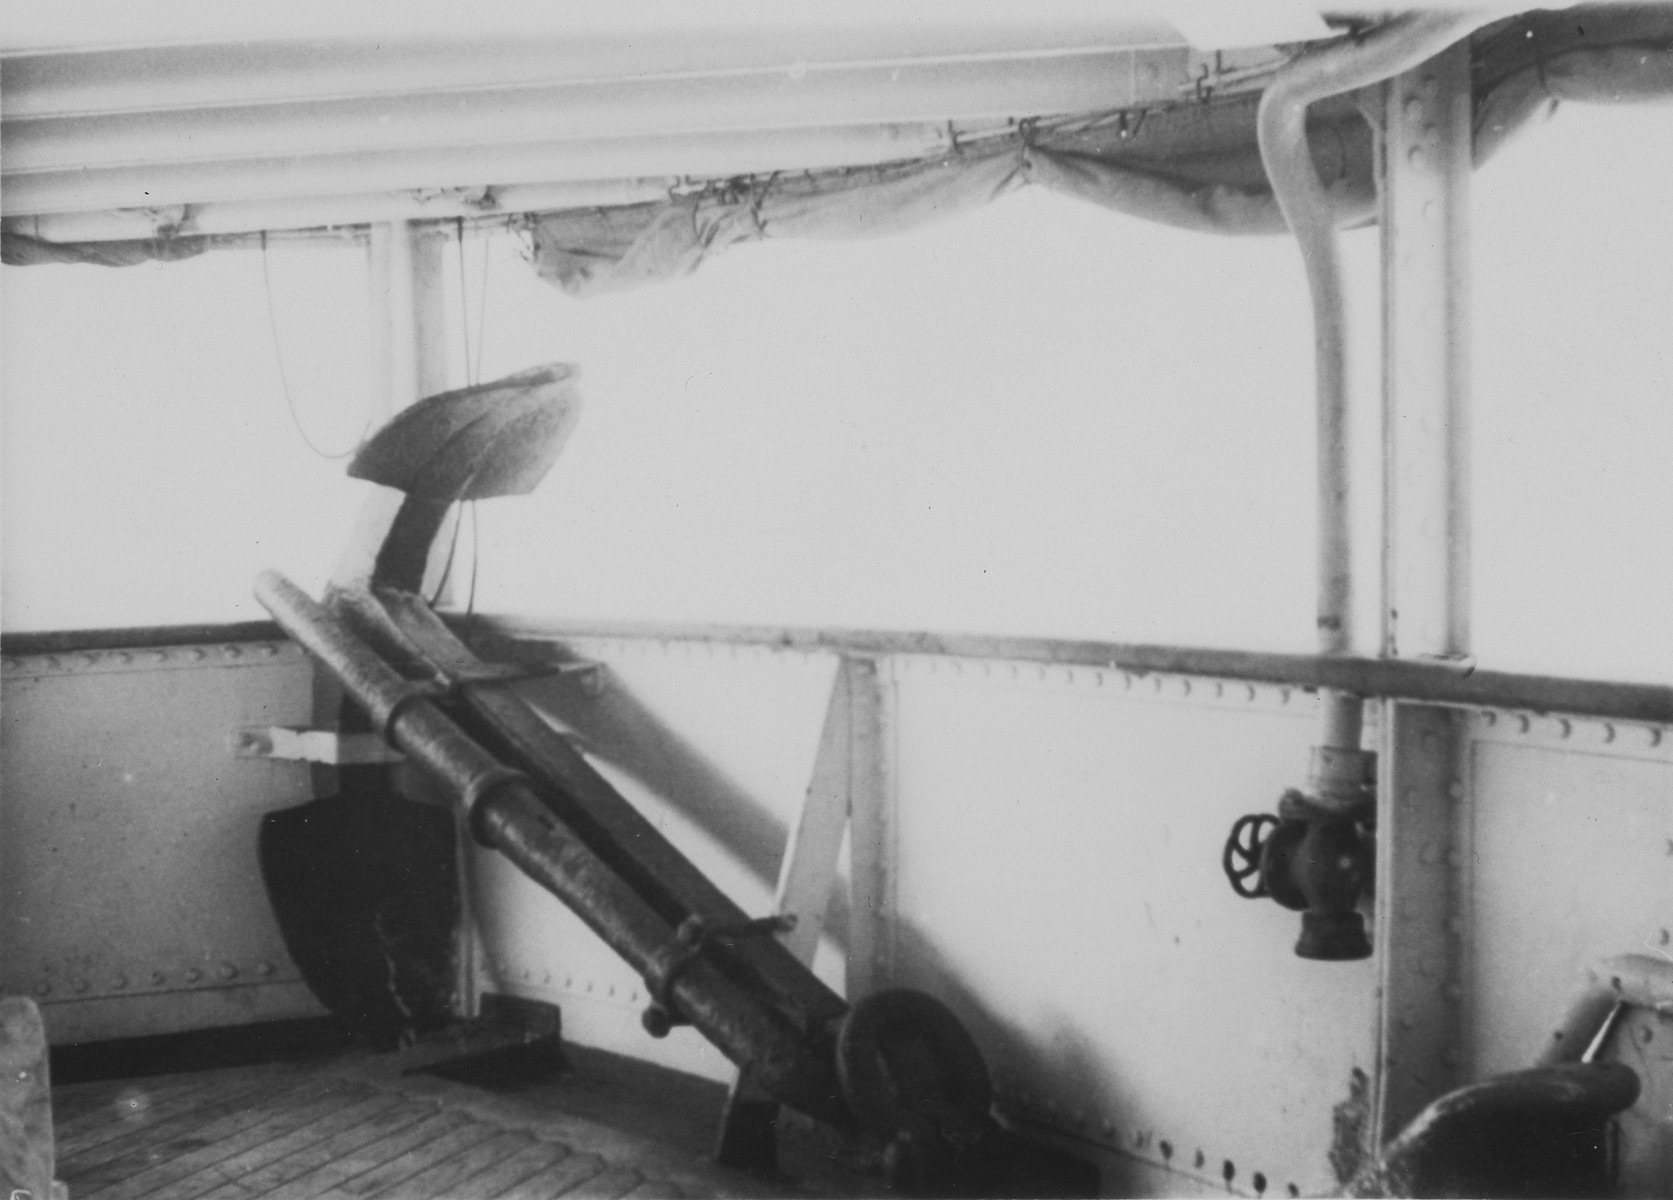 View of the anchor of the MS St. Louis, stowed on the deck of the ship.